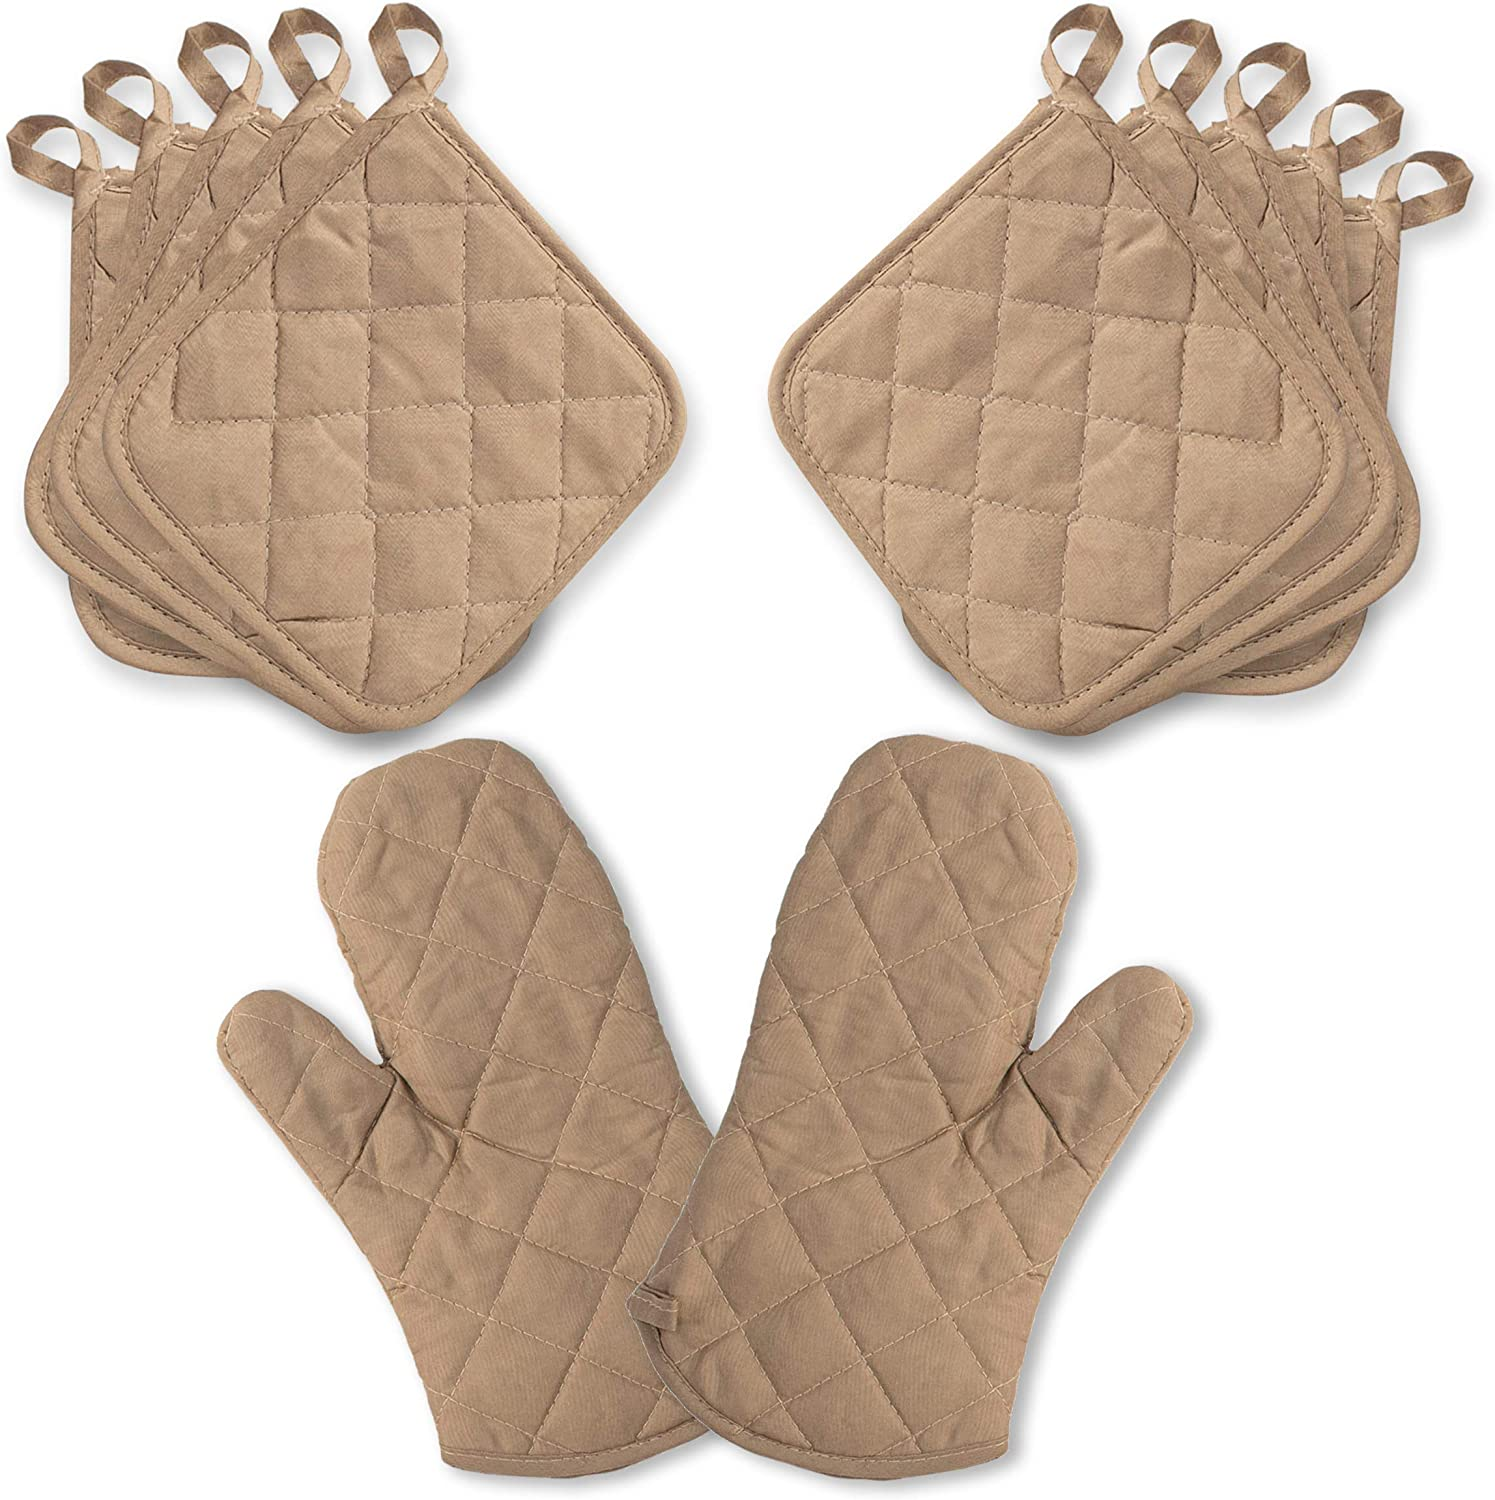 American Mills Pot Holders and Oven Mitts Set 12 Piece| 10 Cotton and Polyester Quilted Kitchen Pot Holders and Oven Mitts | Heat Resistant and Machine Washable (Beige)